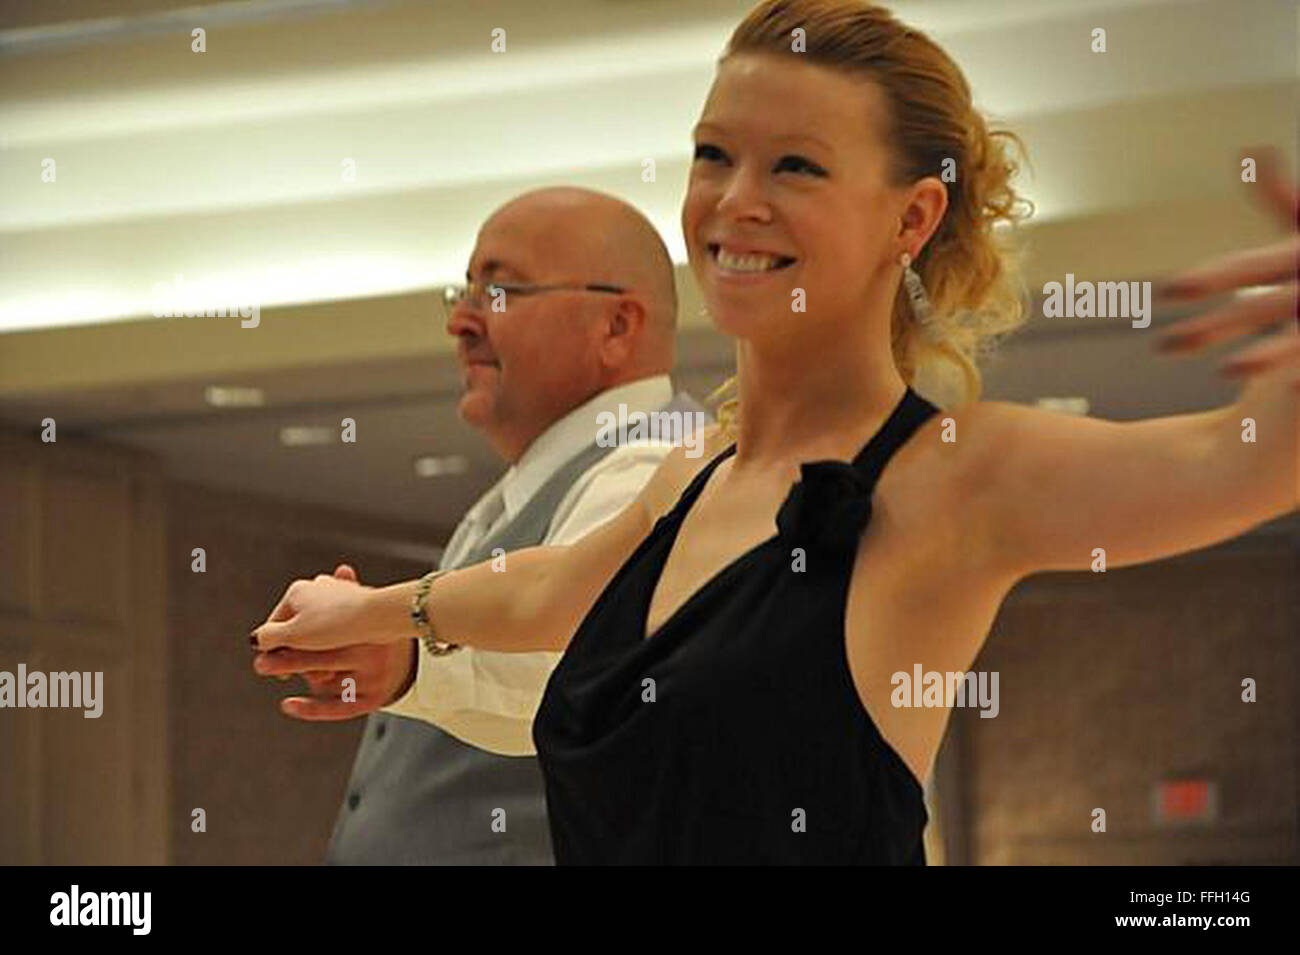 Adrianne Haslet-Davis is a professional dance instructor with the Arthur Murray dance studio in Boston. - Stock Image